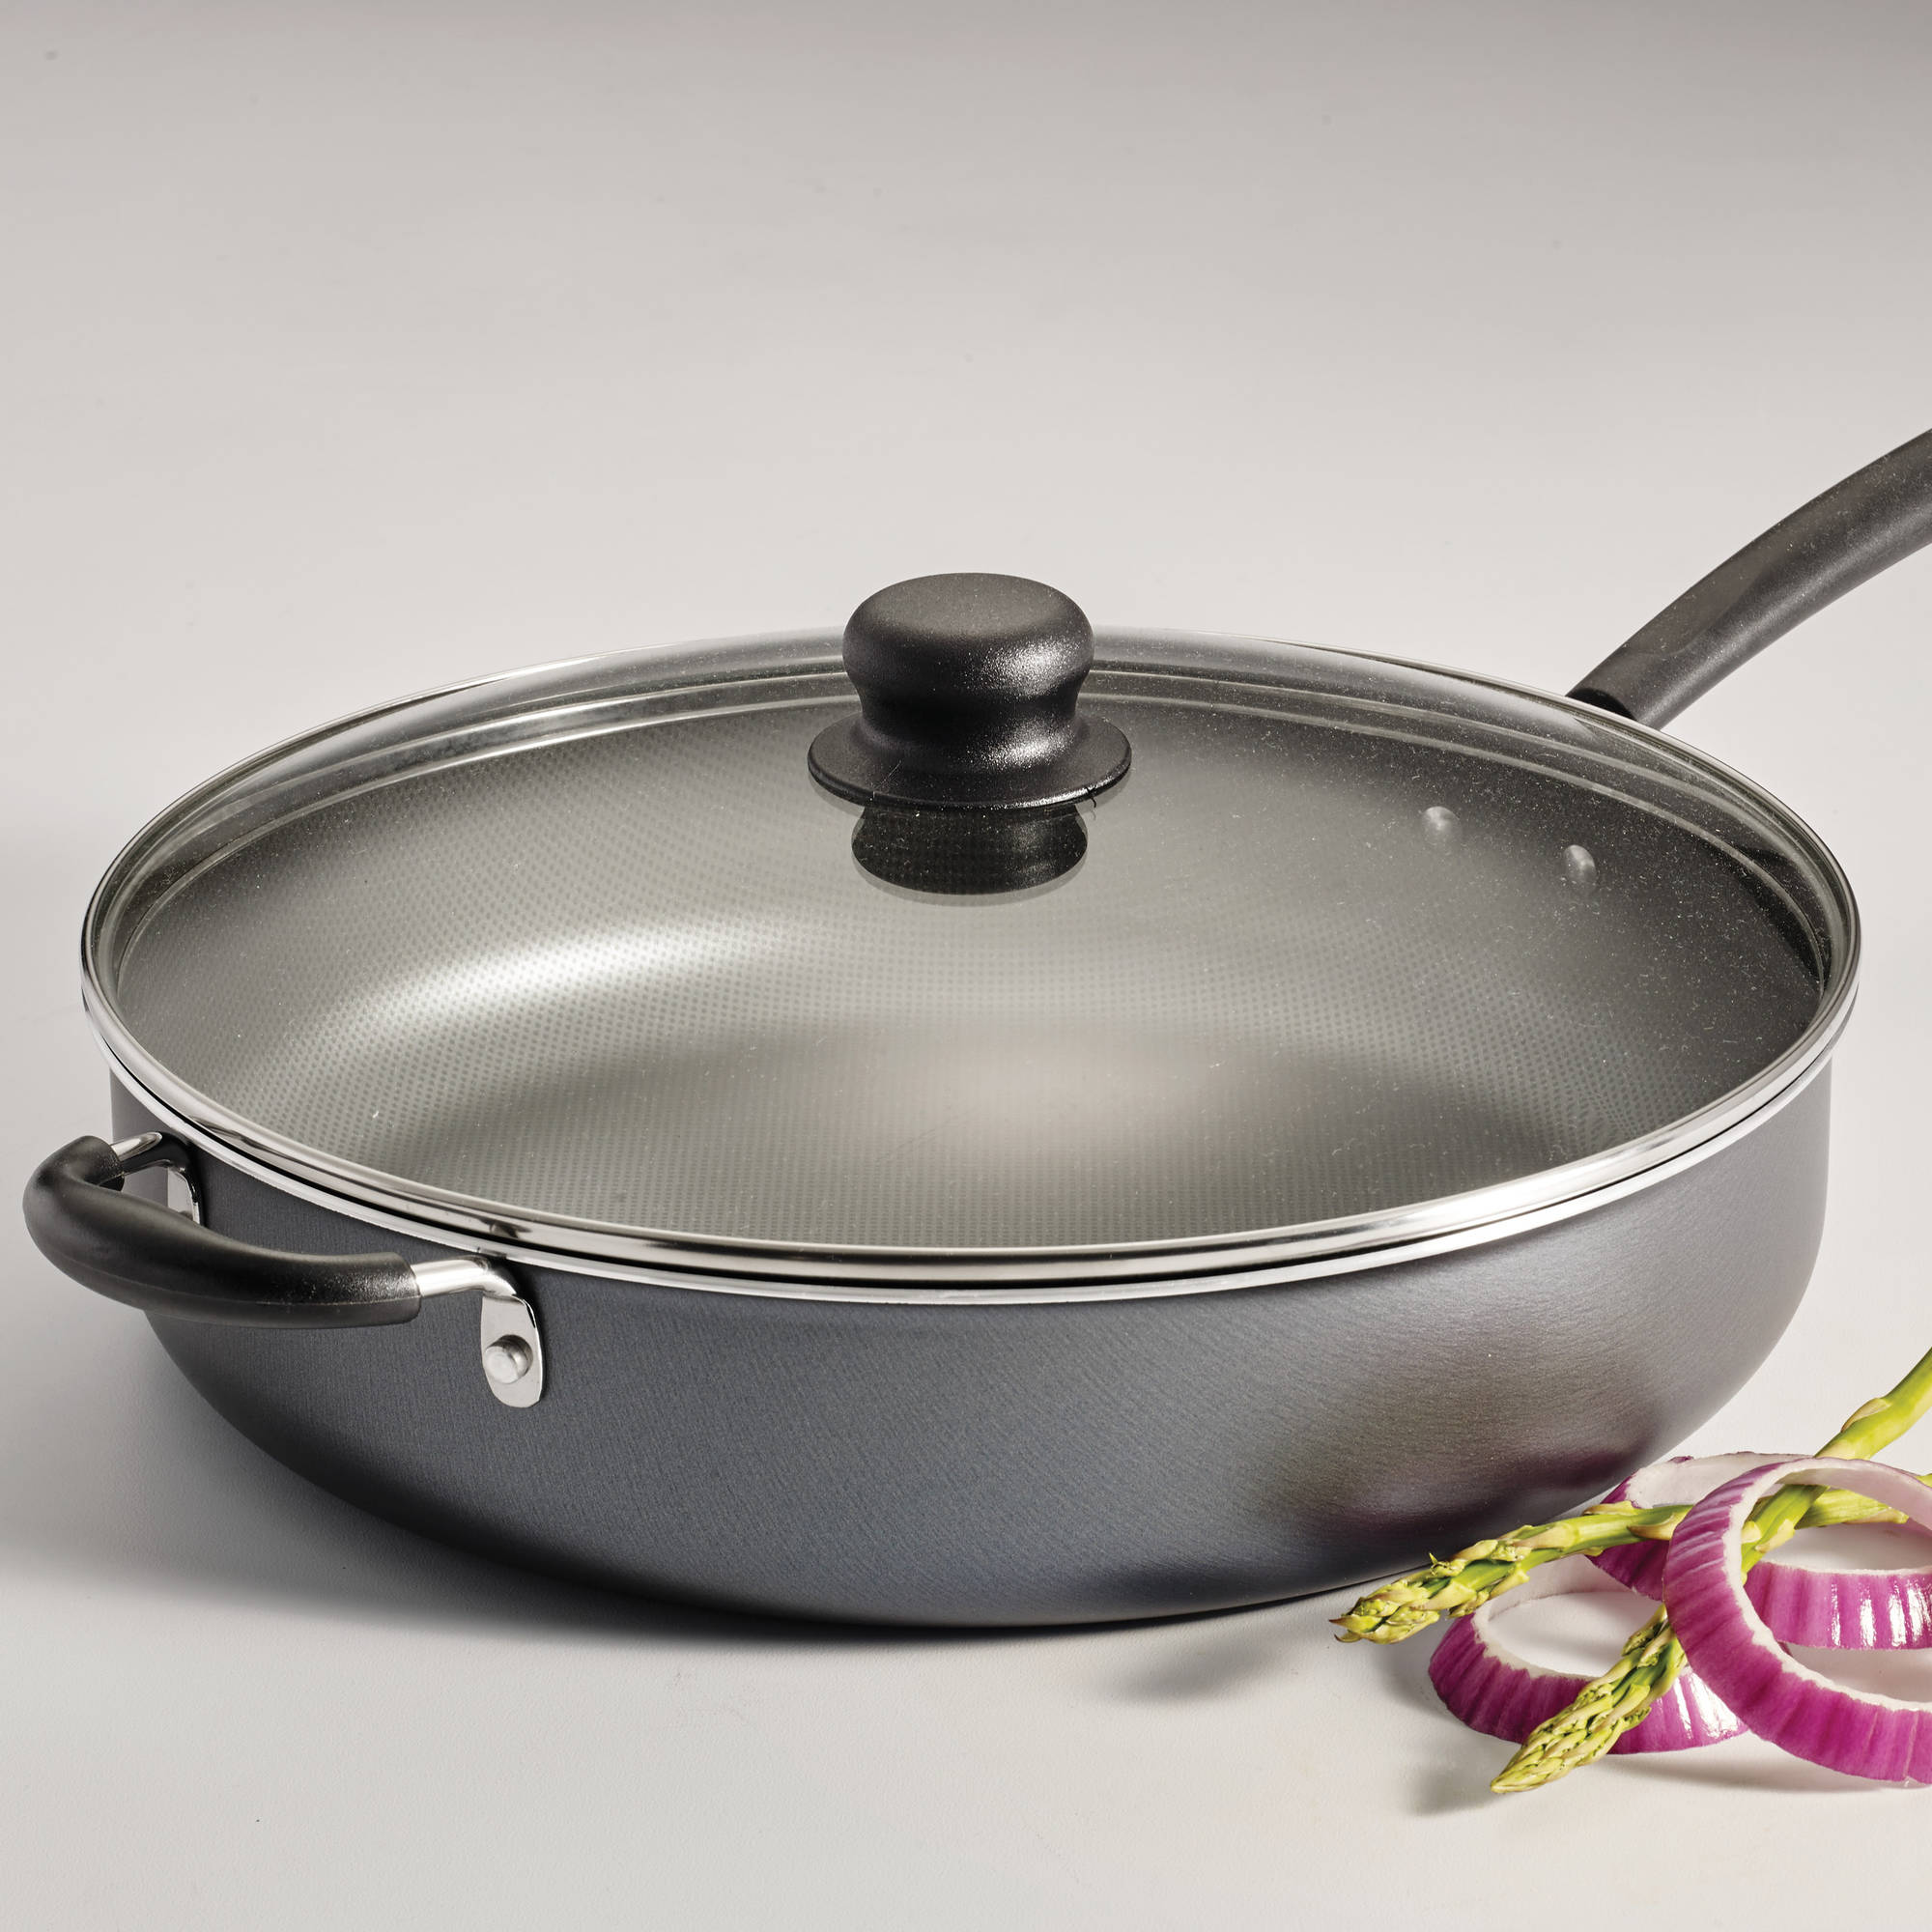 Tramontina PrimaWare 5-Quart Nonstick Covered Jumbo Cooker, Steel Gray